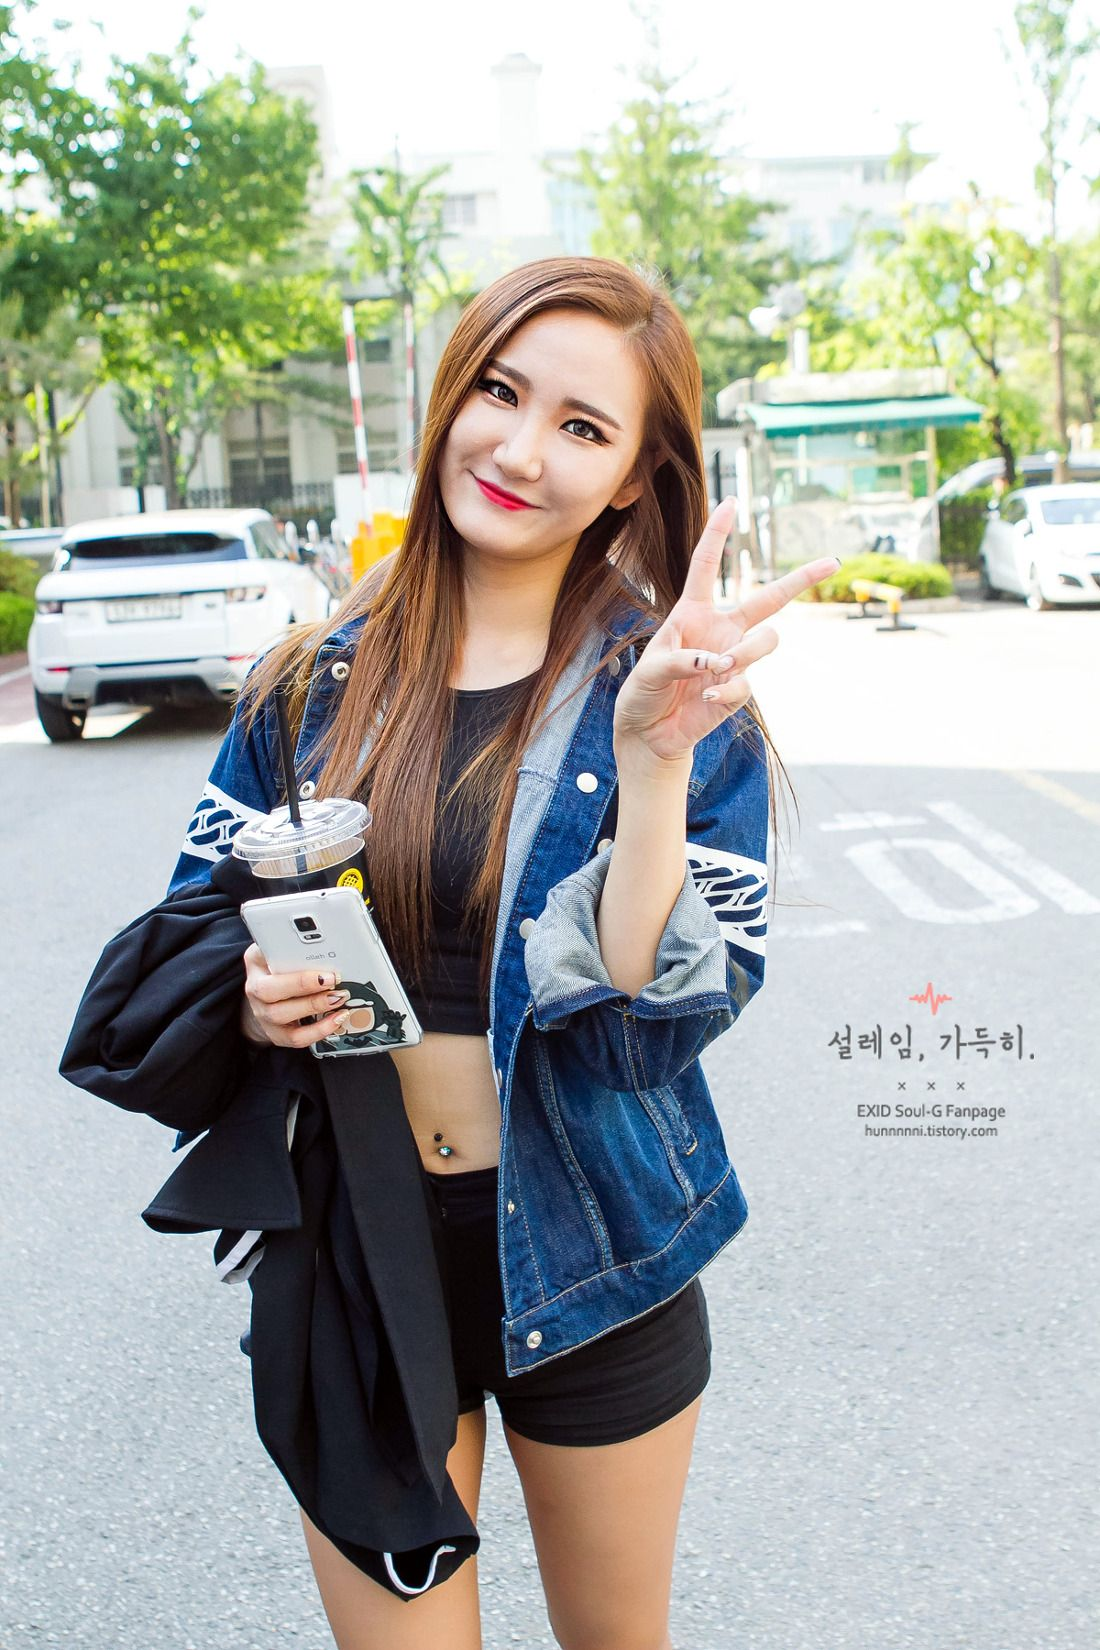 Exid Le Born In South Korea In 1991 Fashion Kpop Kpop Fotos